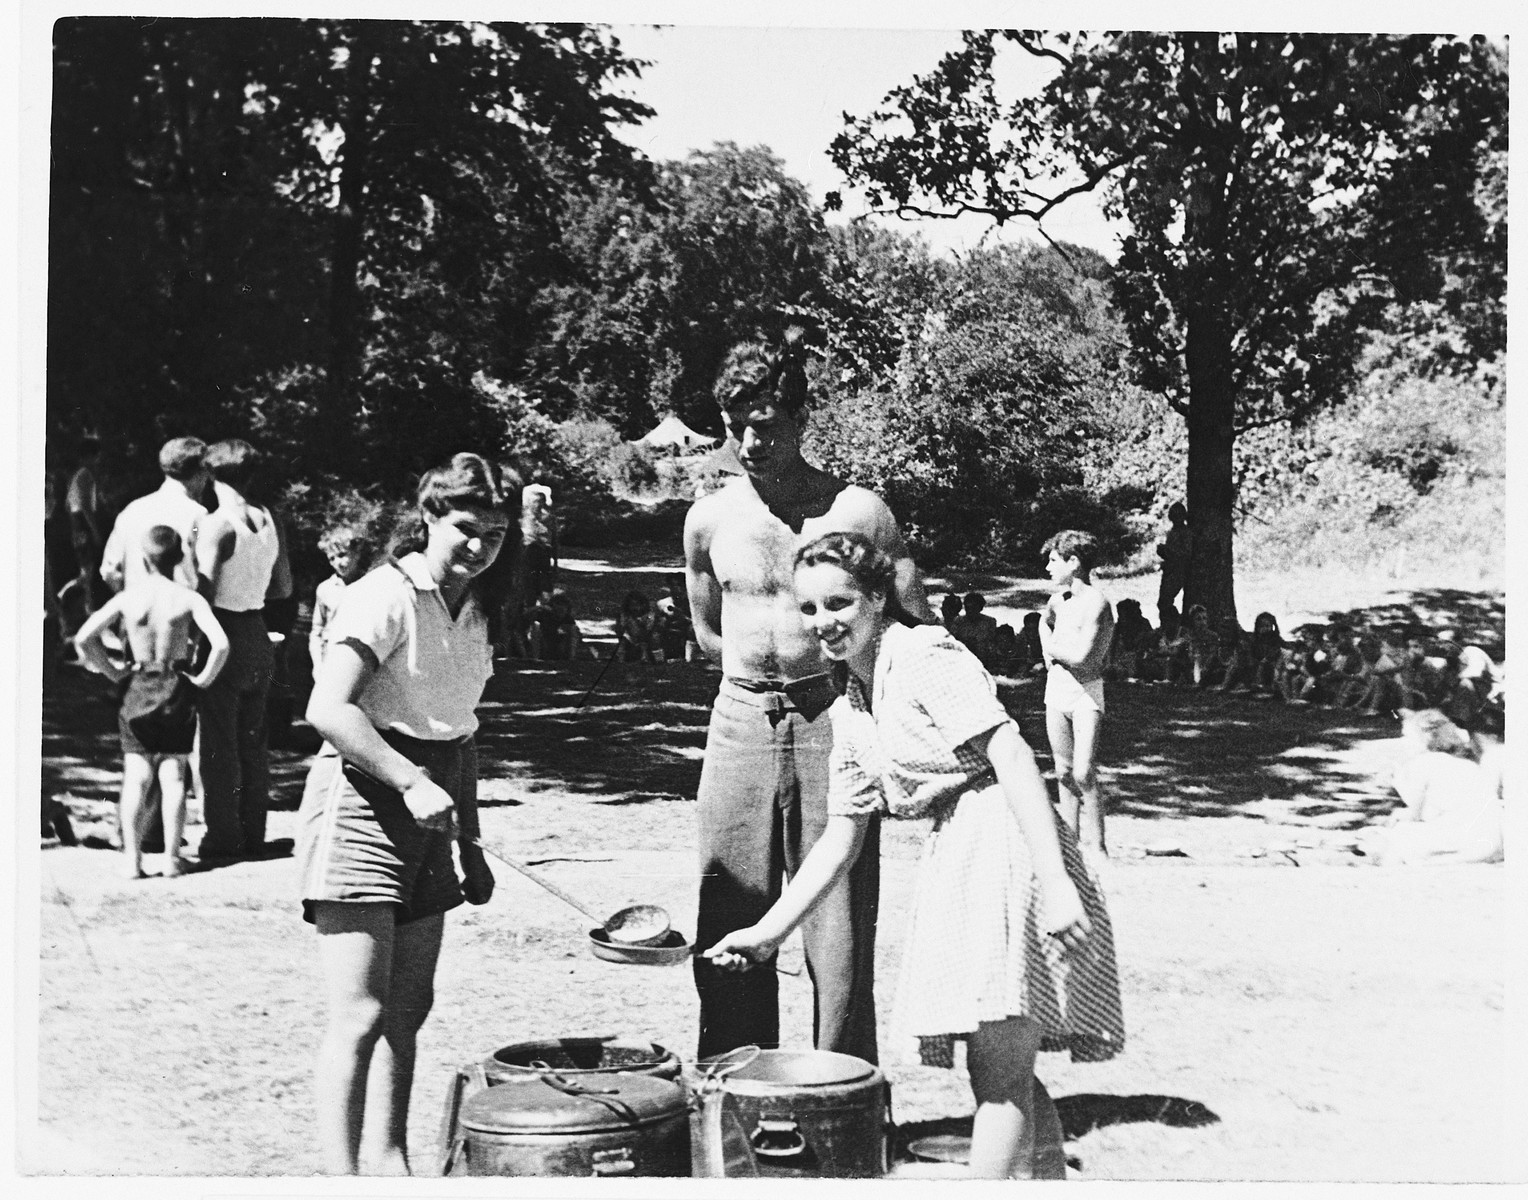 Henia Spielman (left) ladles out soup to two Jewish DP friends from the Gabersee DP camp during an outing in the woods.